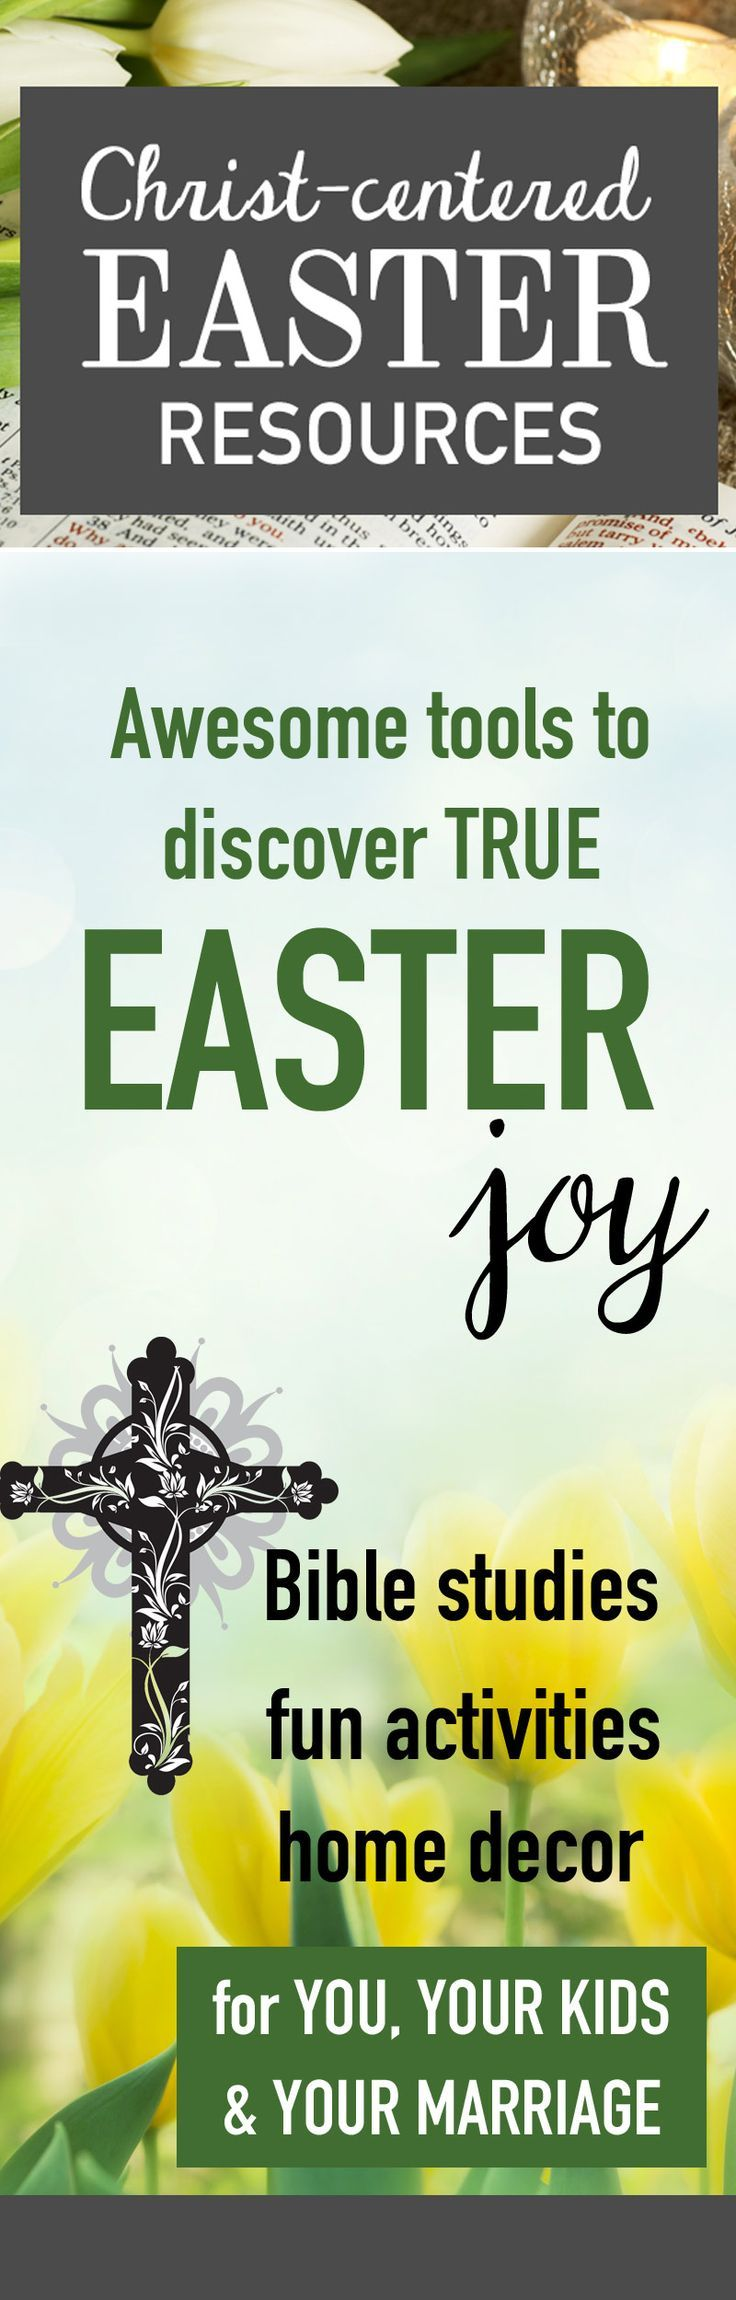 Christian easter decor - No Easter Bunny Here I Love That These Easter Bible Studies Kids Activities And